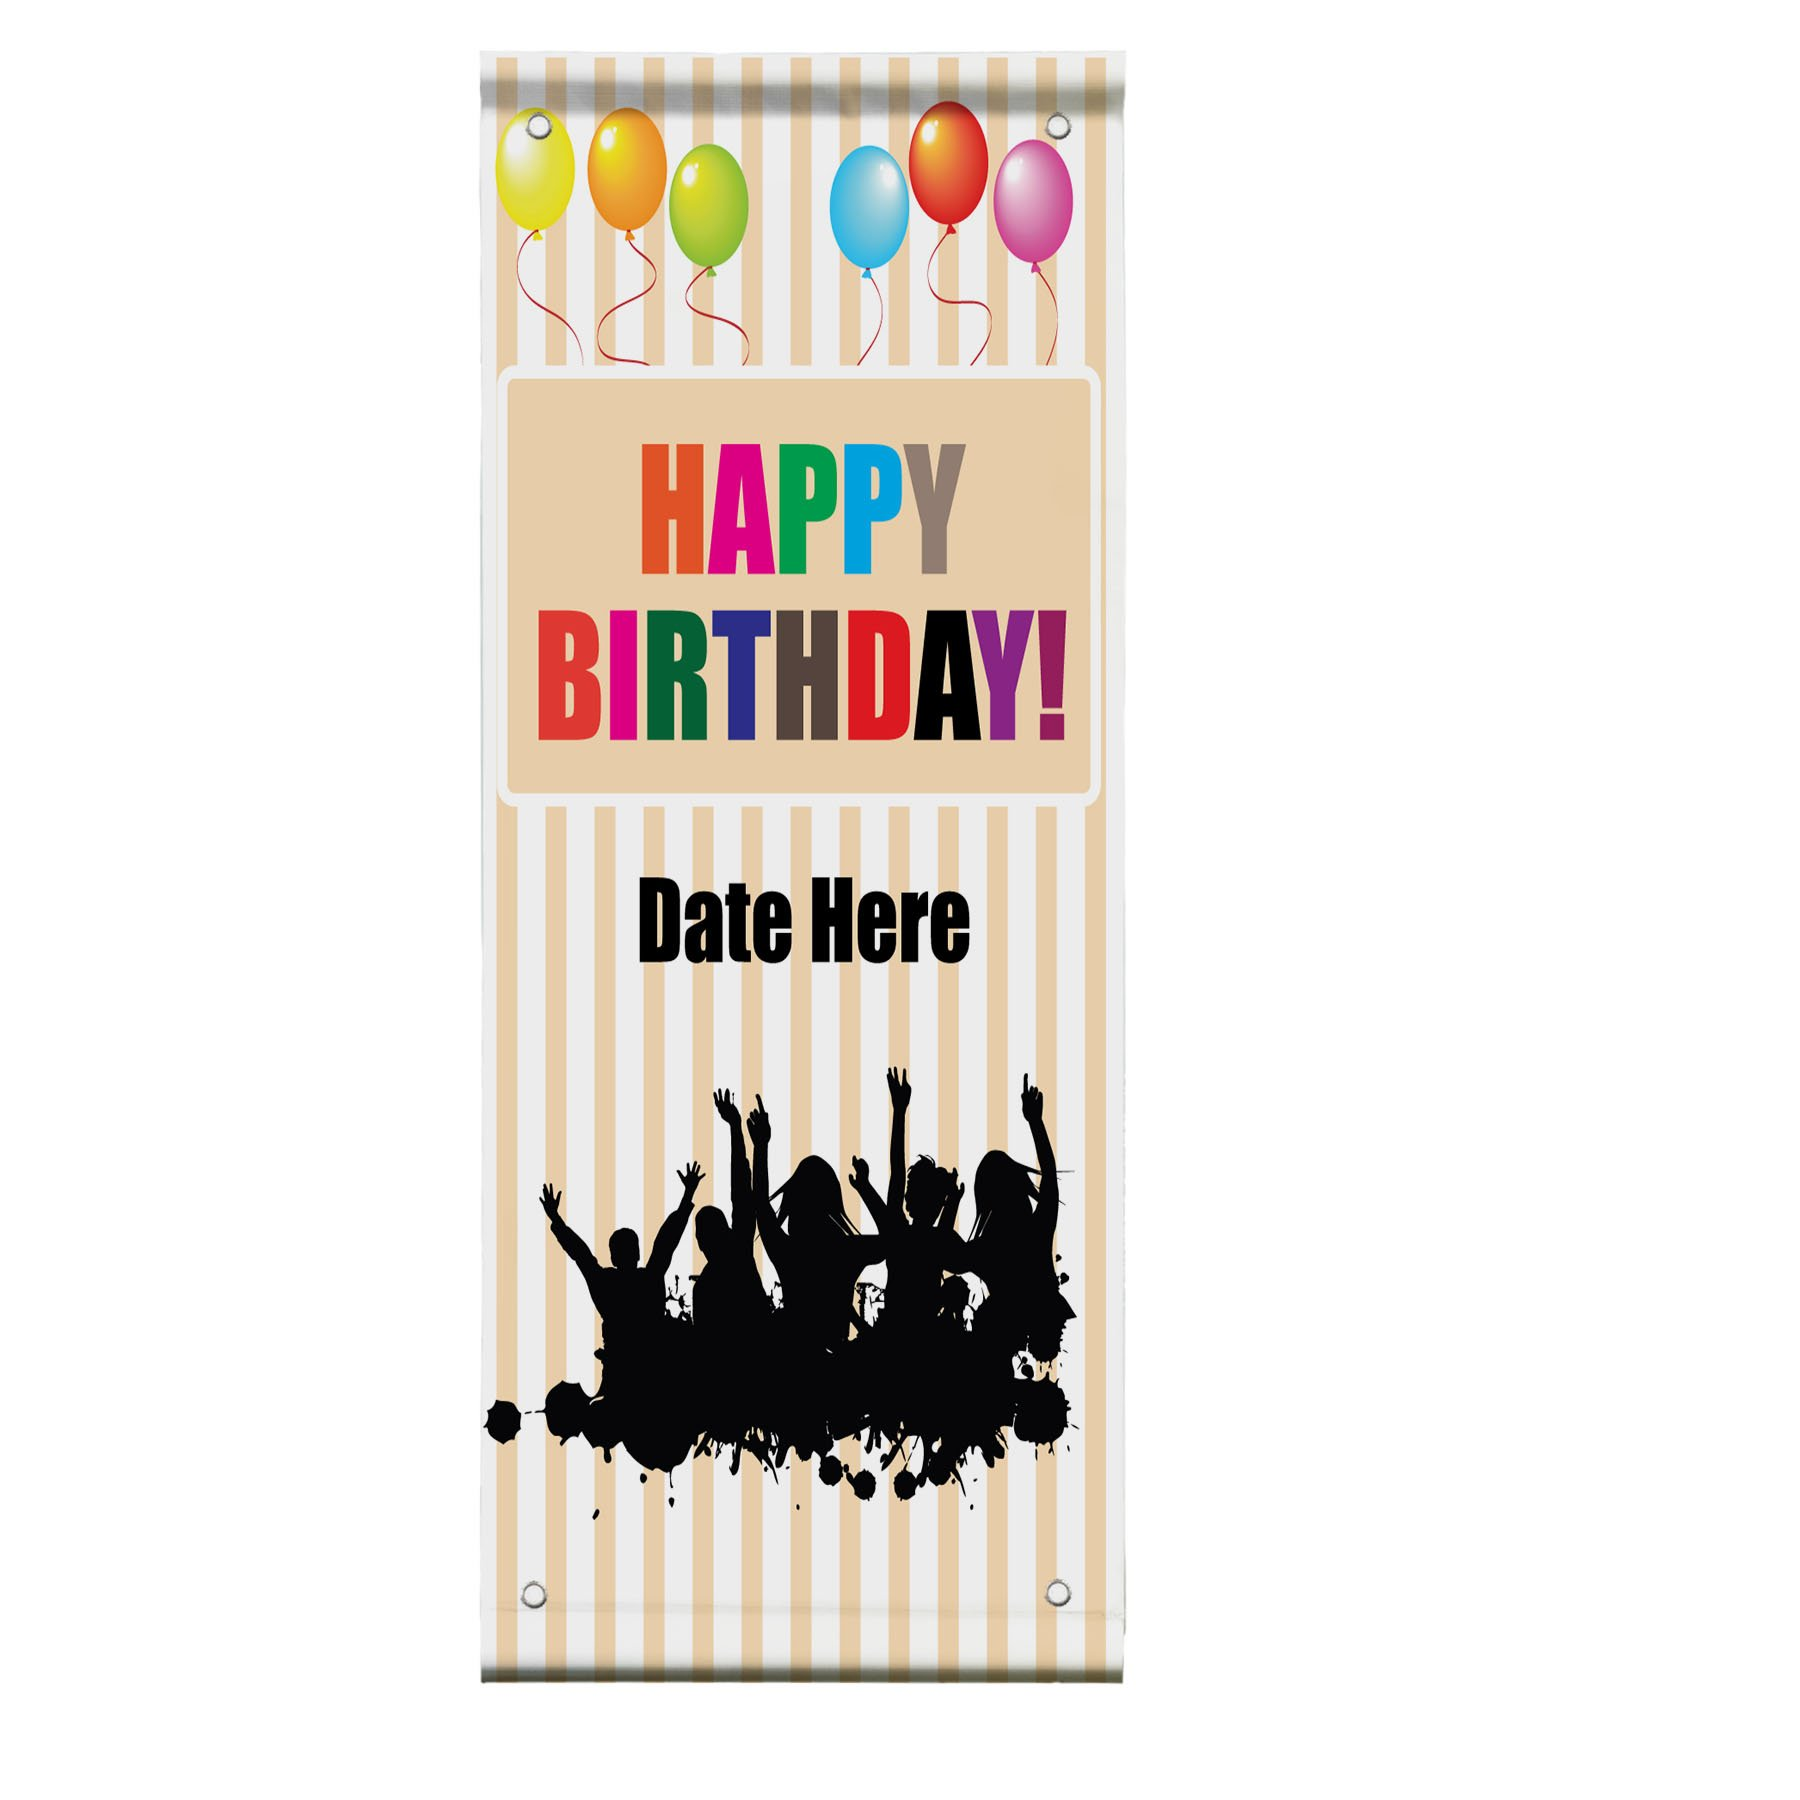 Custom Date Birthday Party Double Sided Vertical Pole Banner Sign 24 in x 36 in w/ Pole Bracket